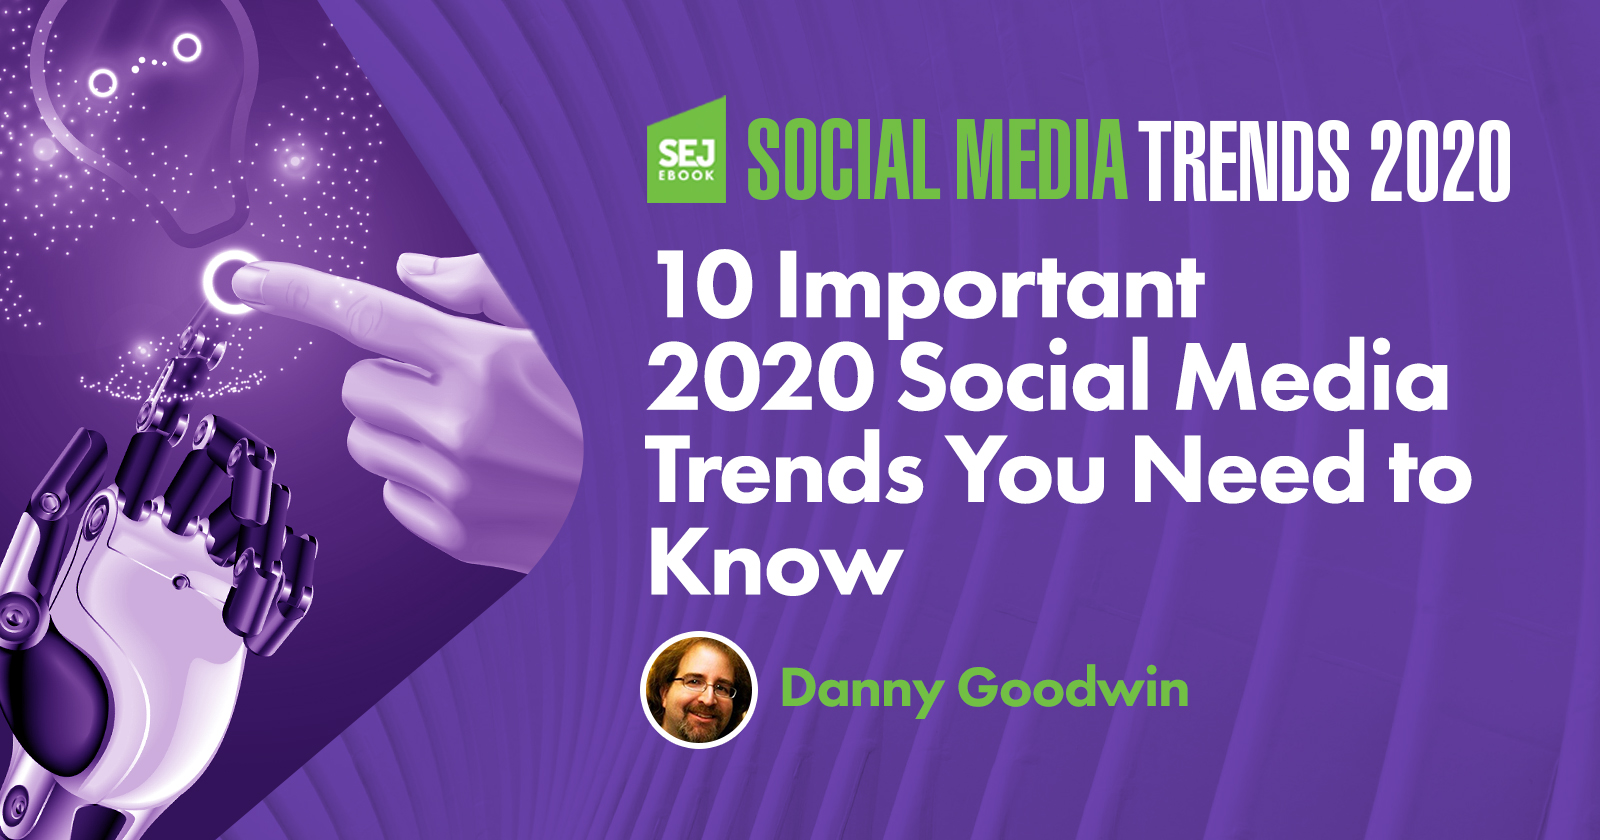 10 Social Media Trends That Will Matter Most in 2019 by @MrDannyGoodwin